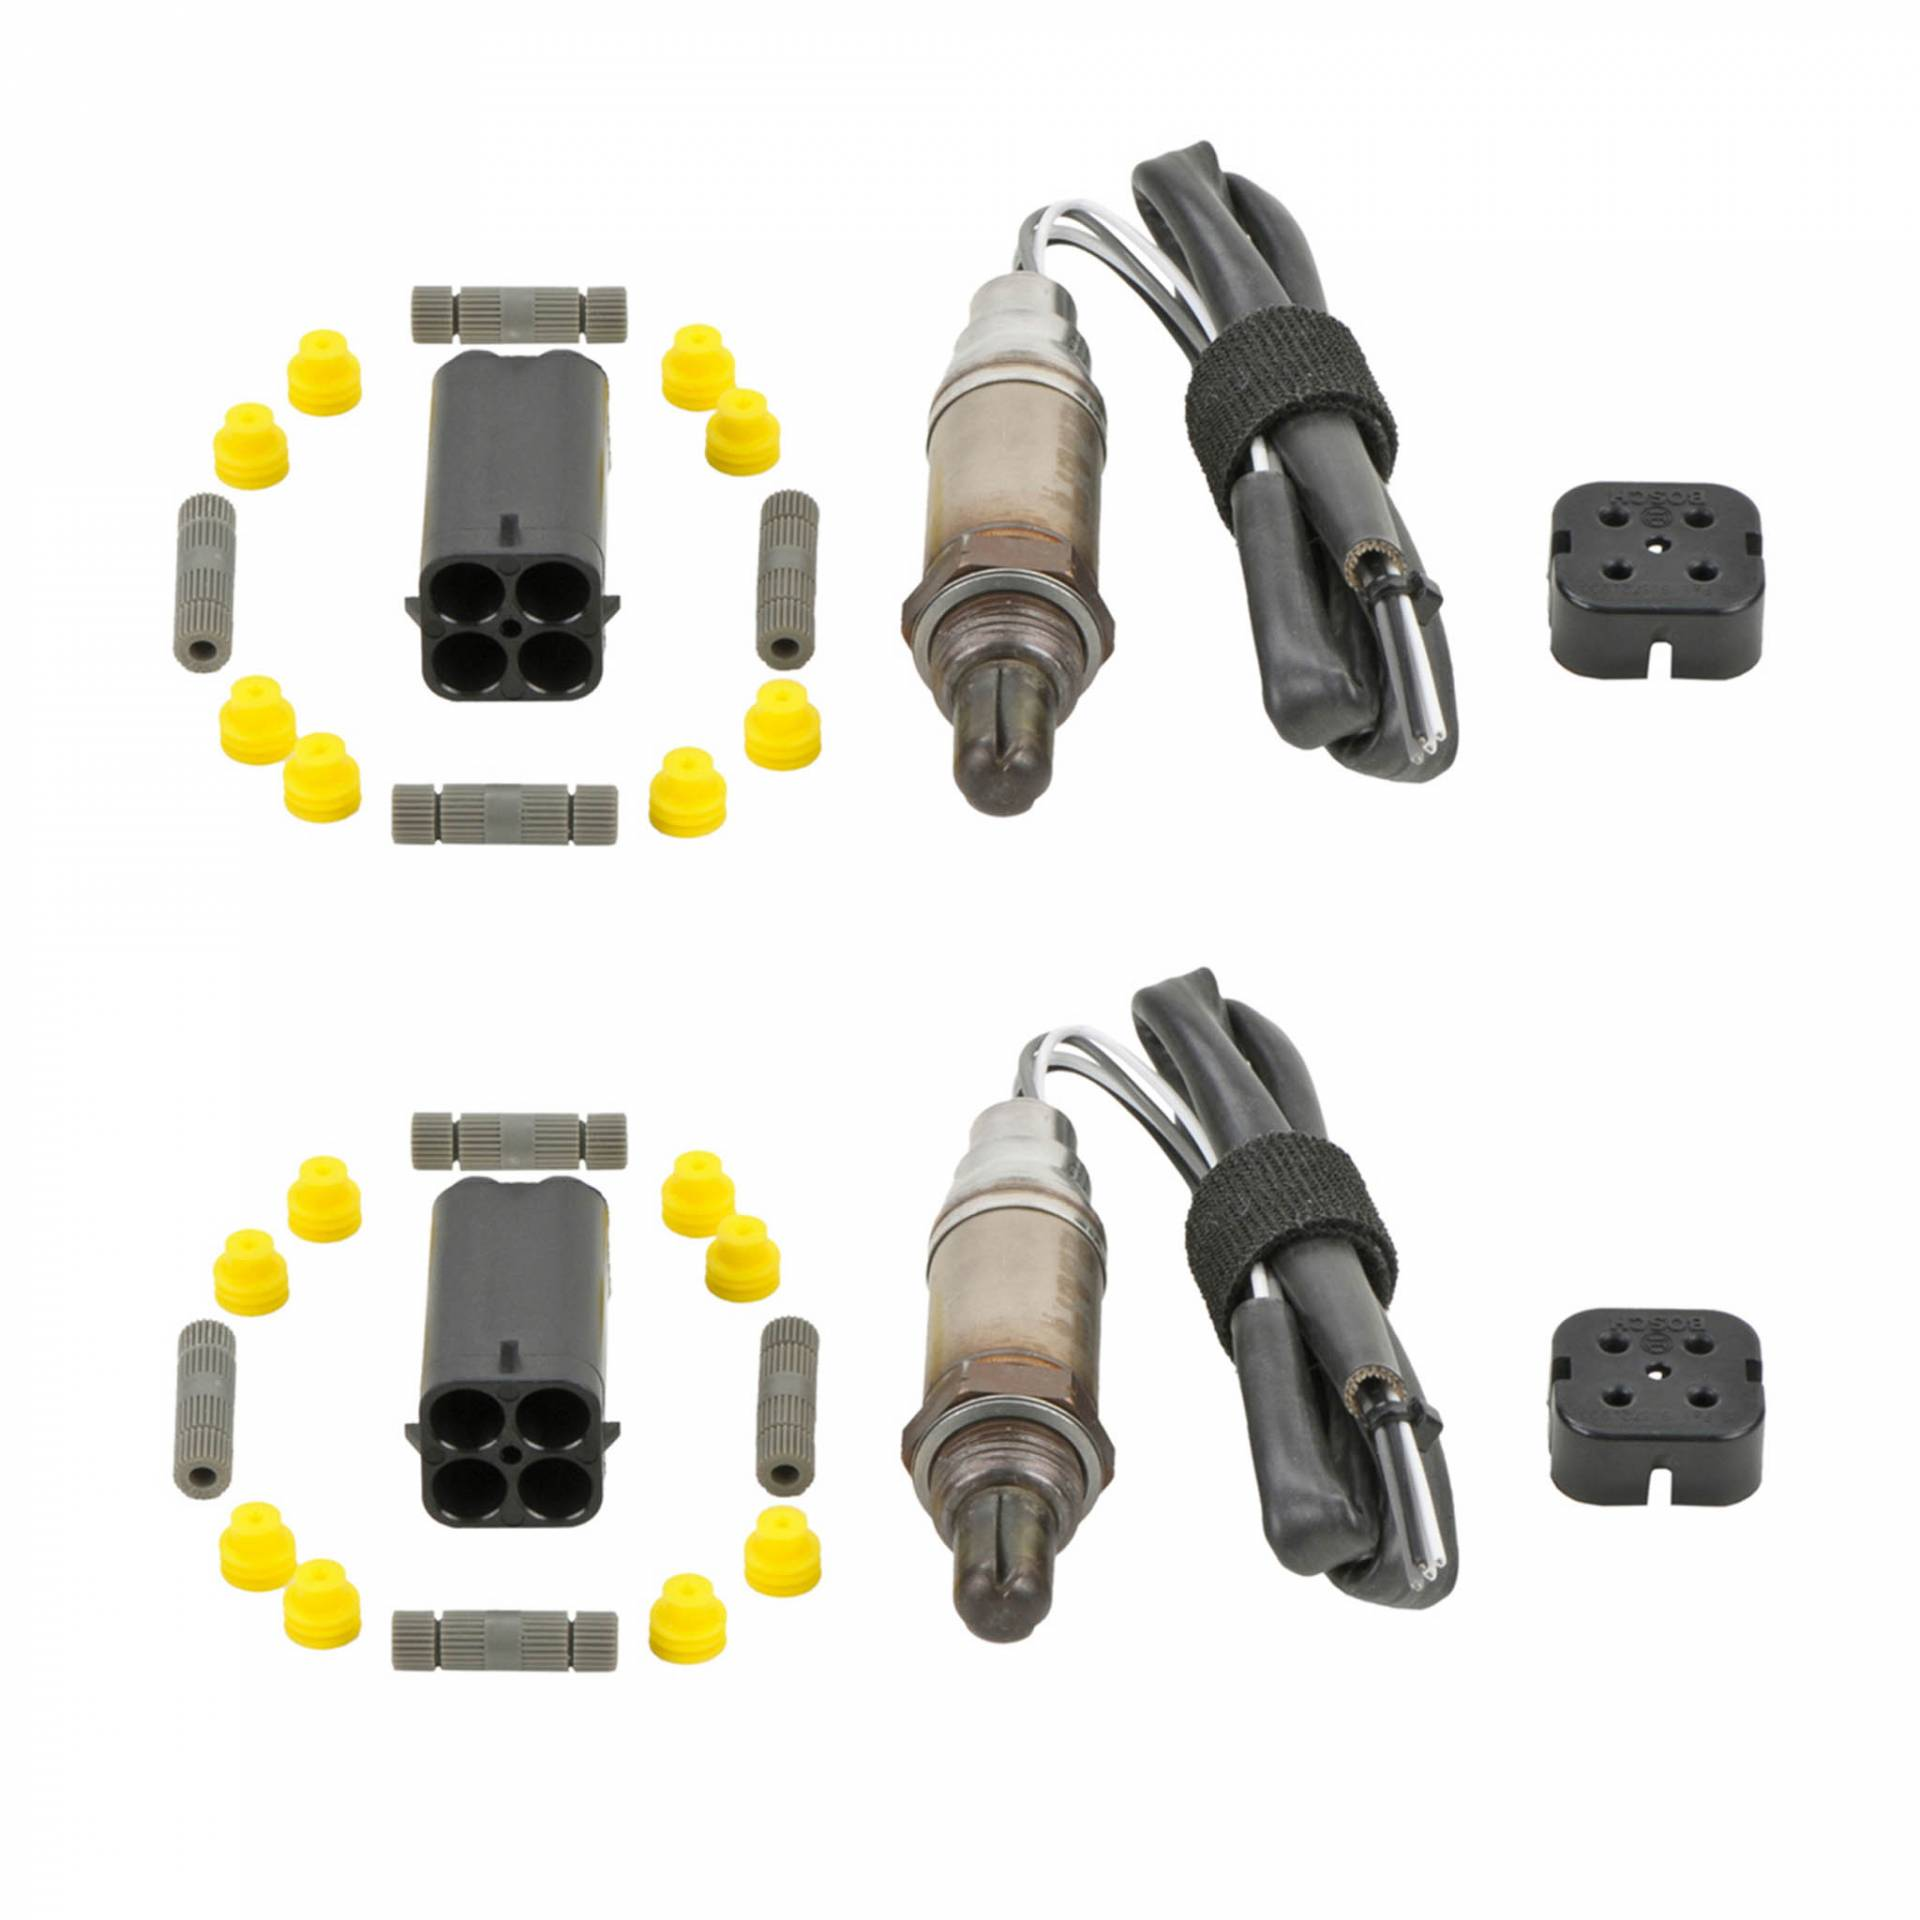 New 1999 Chevrolet Lumina Oxygen Sensor Kit Pair 3.1L Eng. - V6 Eng. - Upstream and Downstream Pair from BuyAutoParts